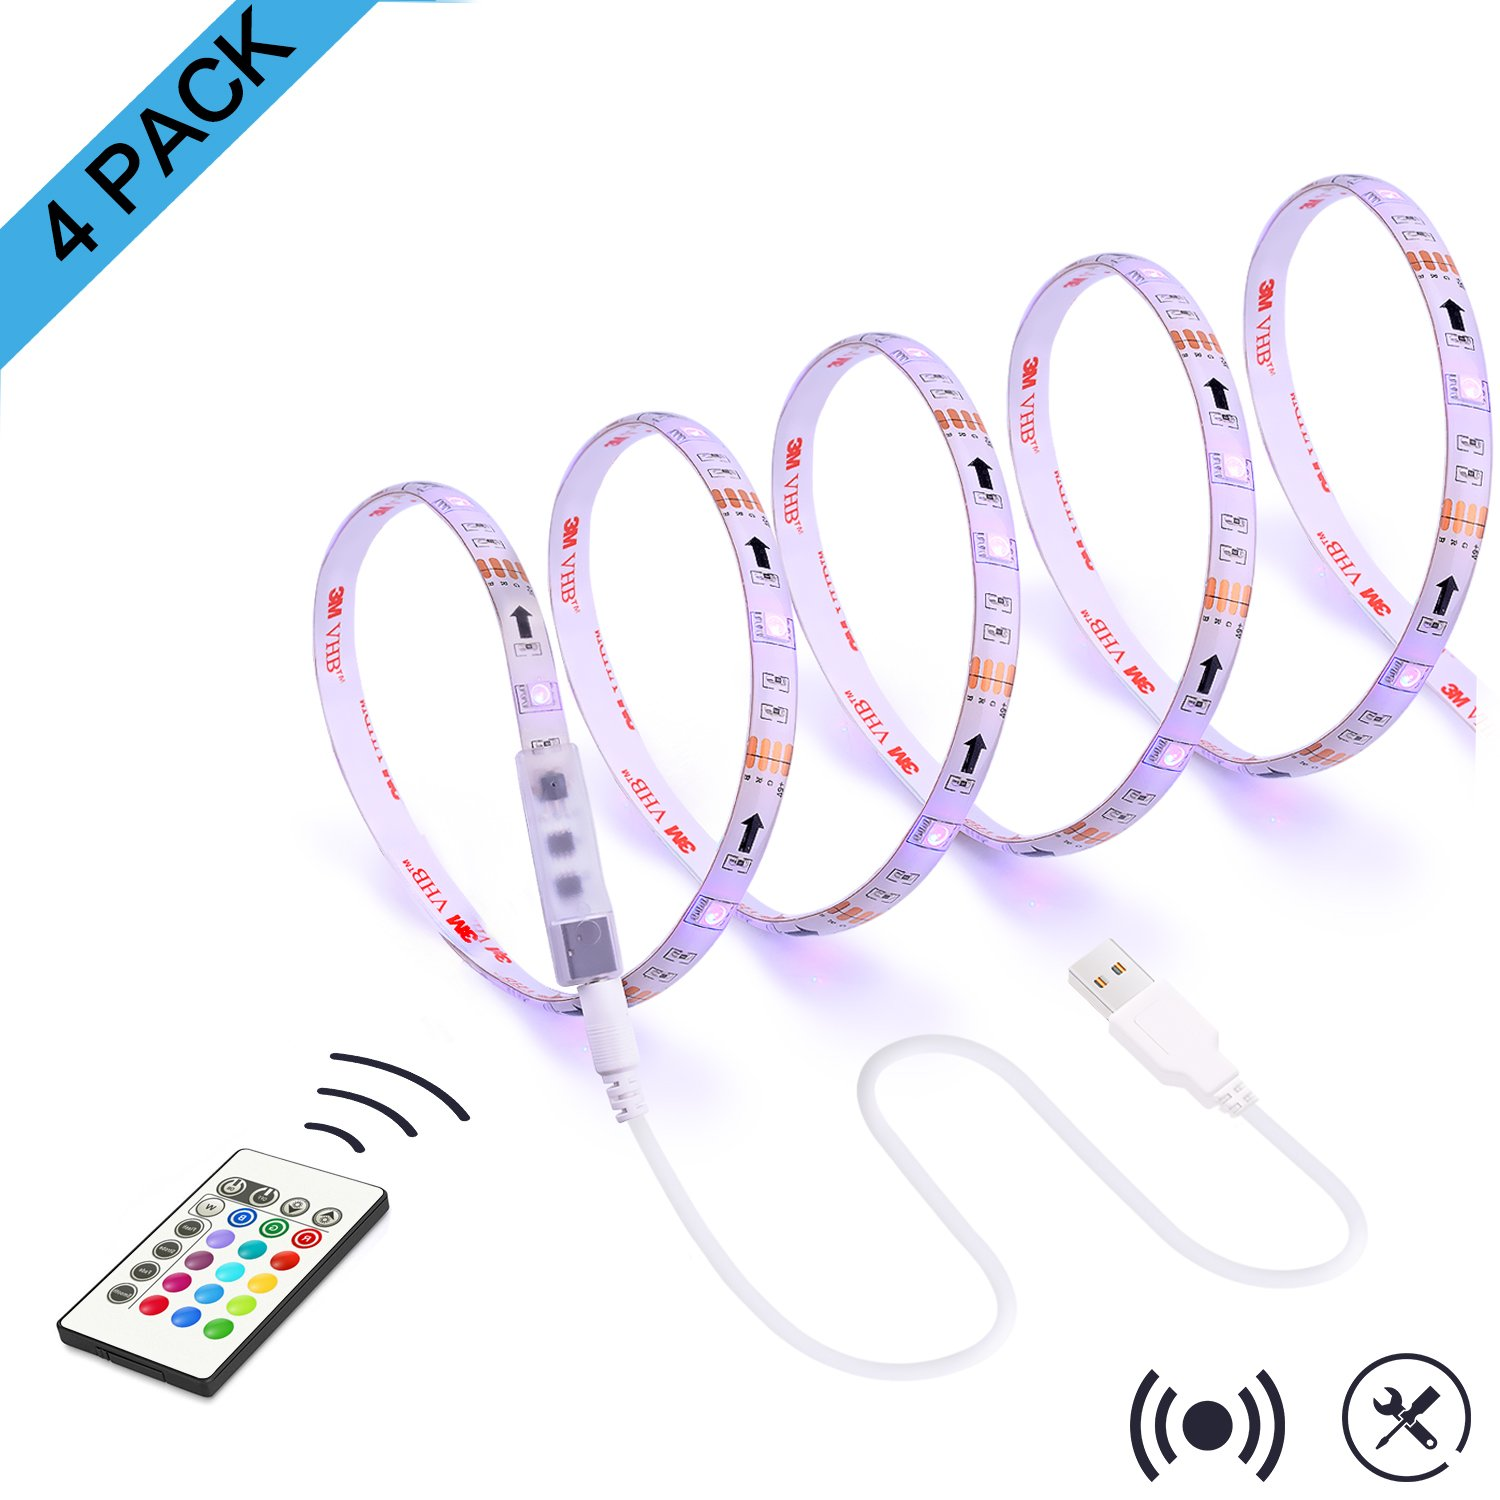 LED Strip Lights for TV Backlight,RGB 11.28Ft Bias Lighting with Remote for 55 to 75 Inches Flat HDTV and USB Powered Light Strip-Color Changing & Dimmable 4 pack